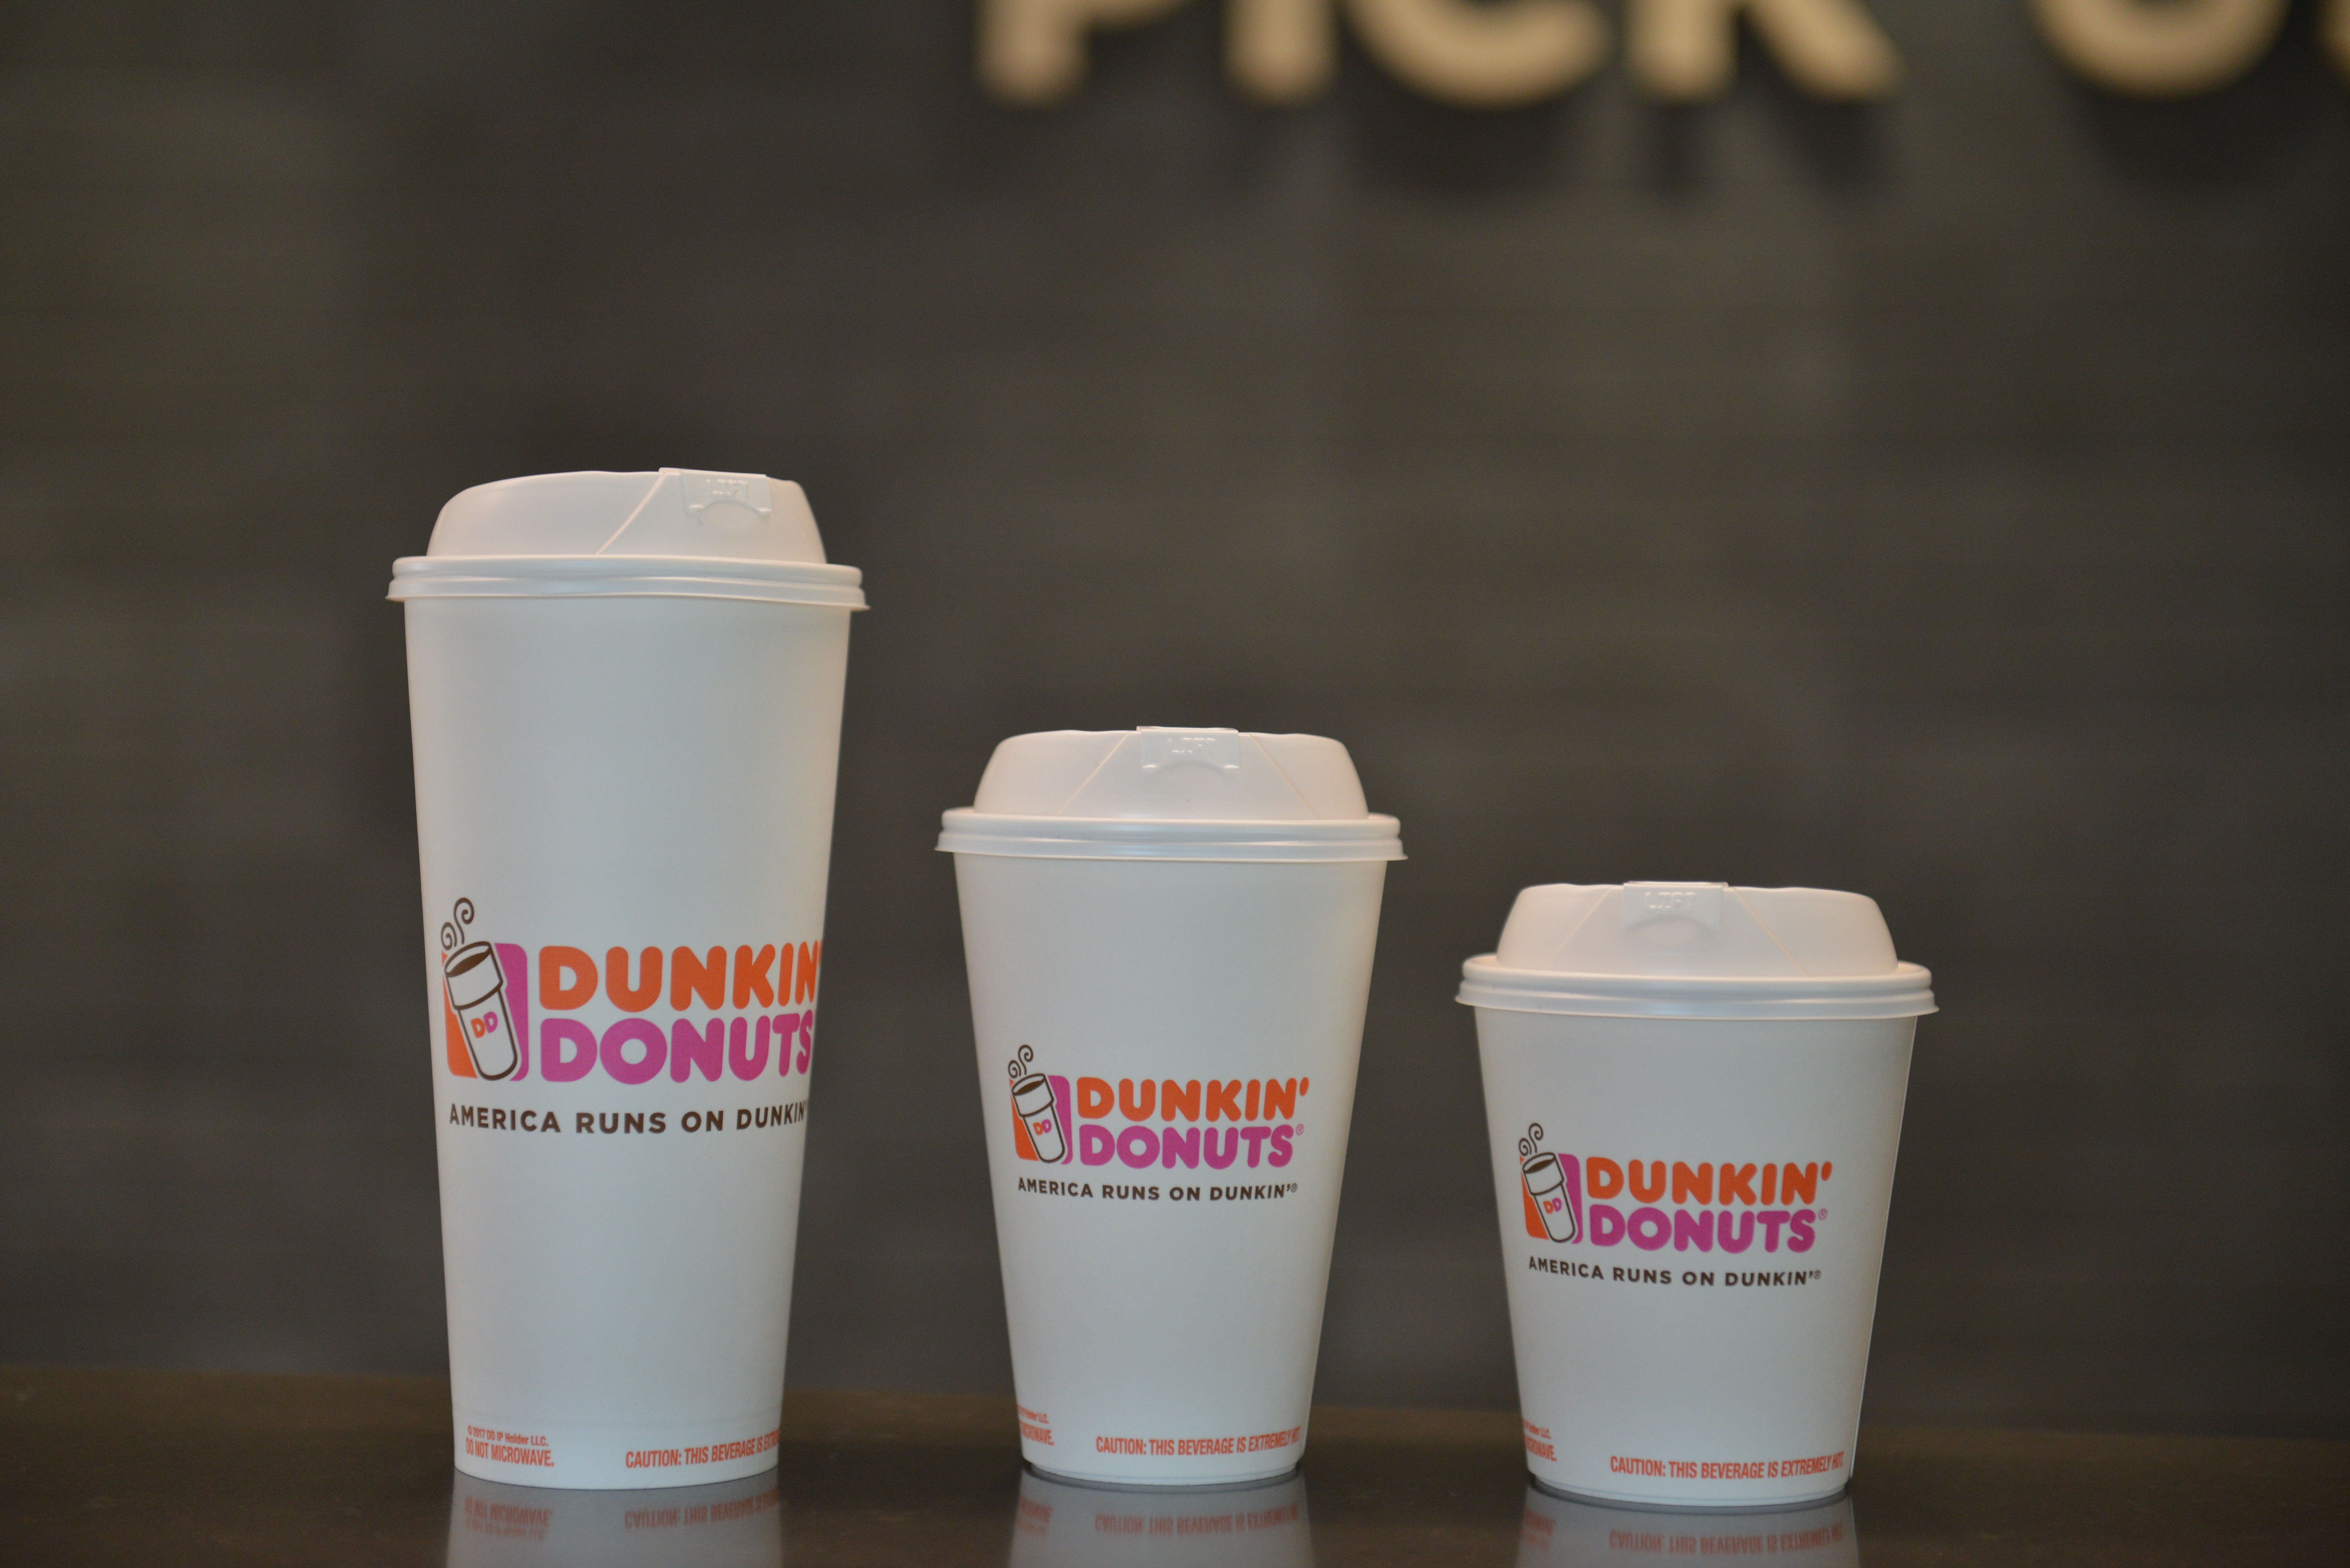 Dunkin' Donuts Cups Changing From Styrofoam to Paper by 2020